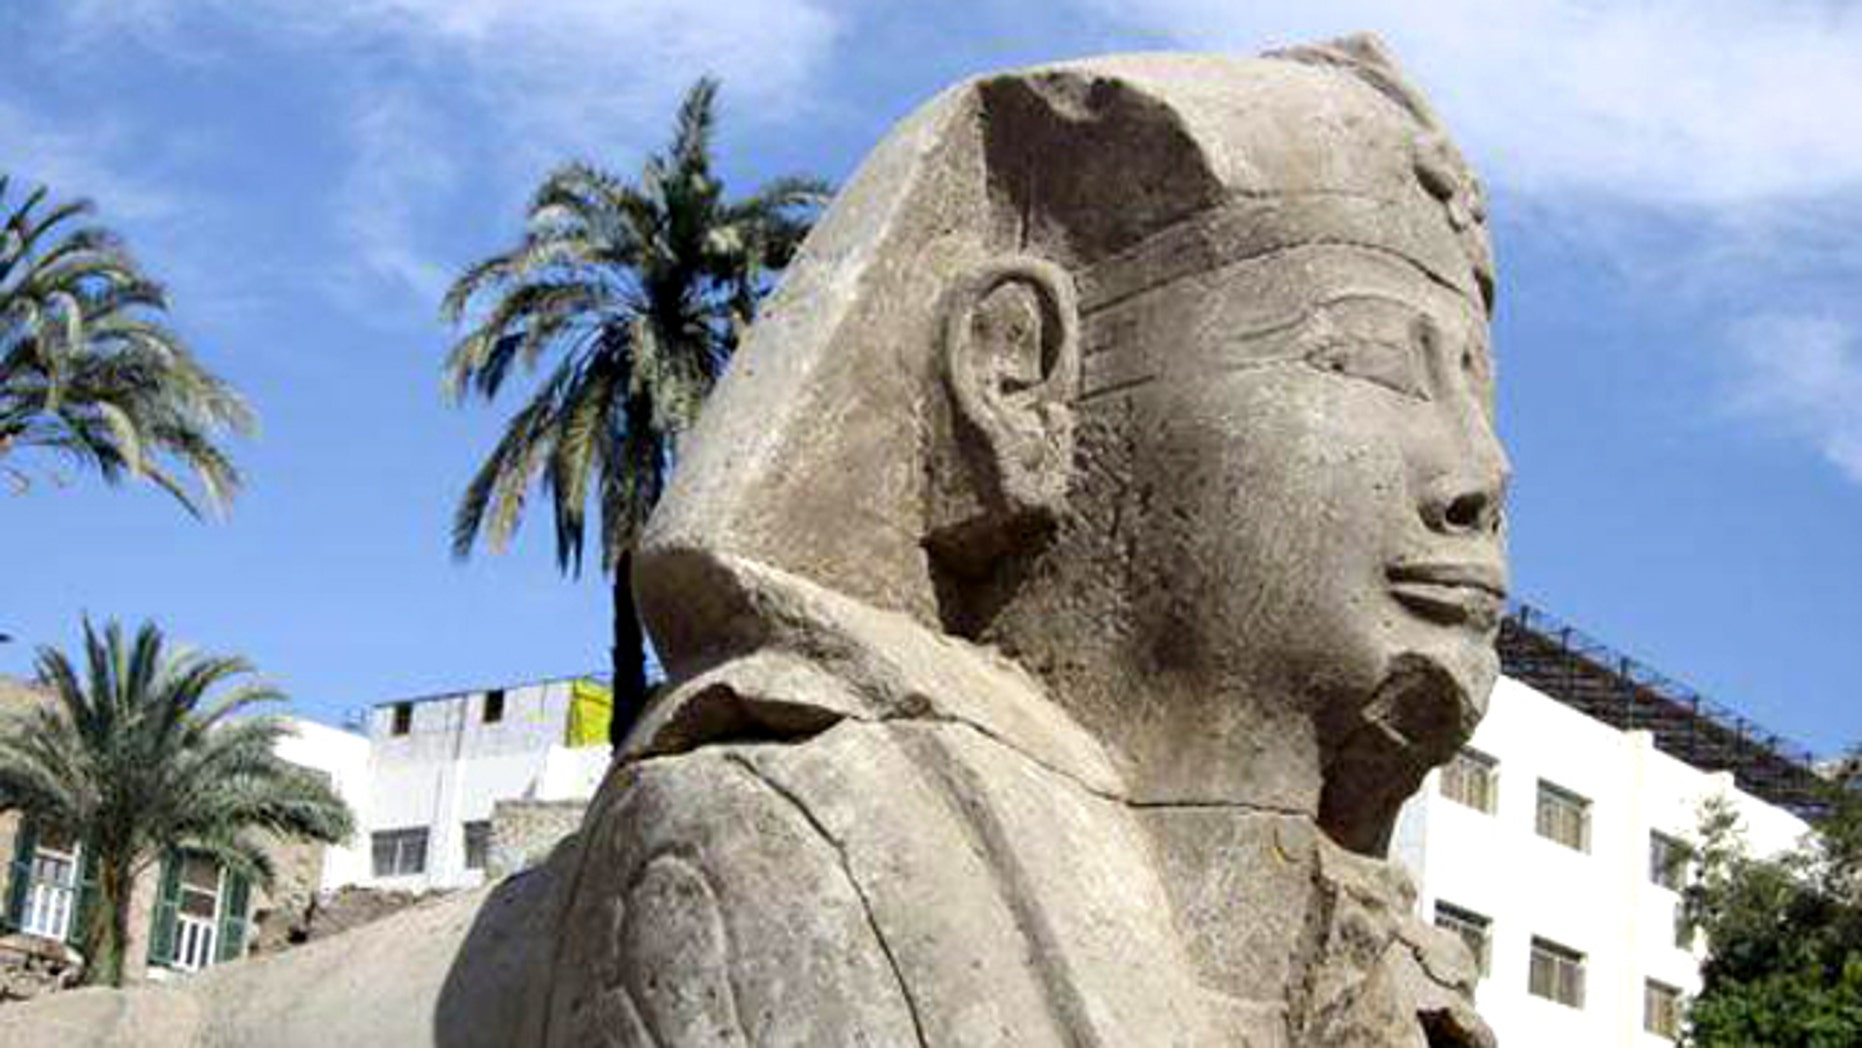 A reconstructed Sphinx statue in Luxor, discovered not within the well known Avenue of the Sphinxes but at the end of a newfound road.